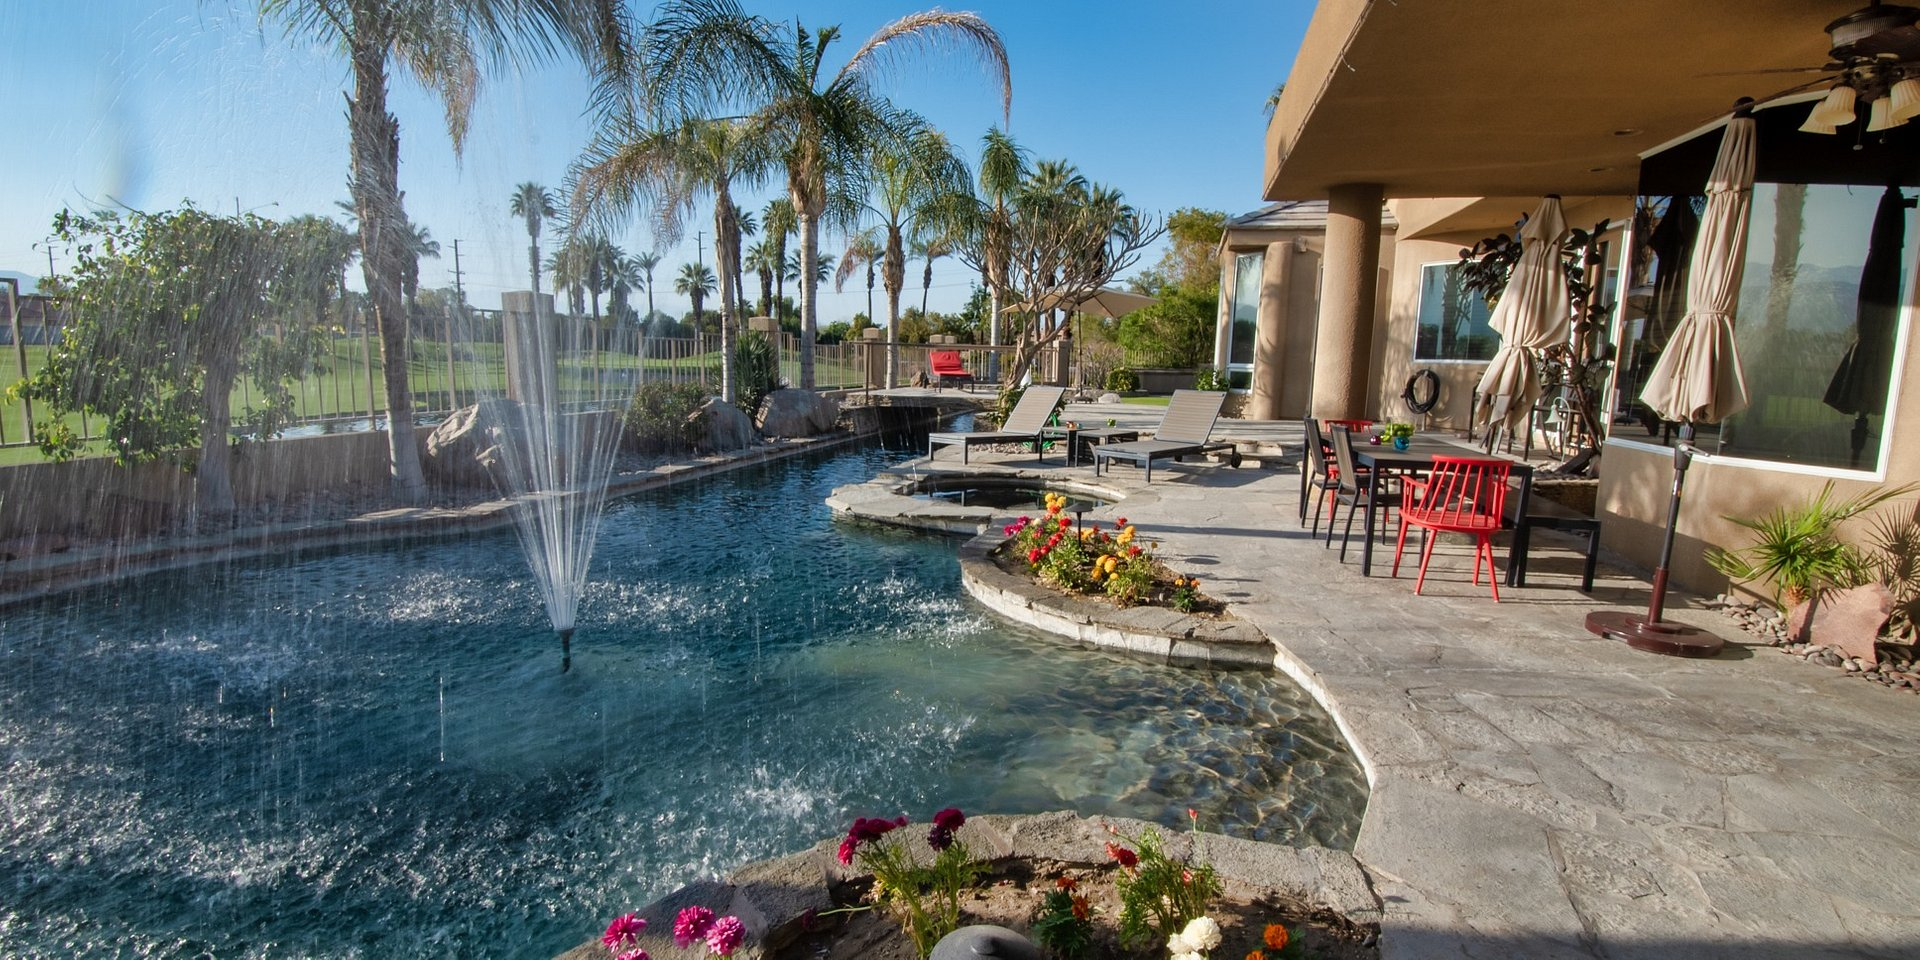 Coldwell Banker Residential Brokerage Lists Palm Desert Property for $1.6 Million